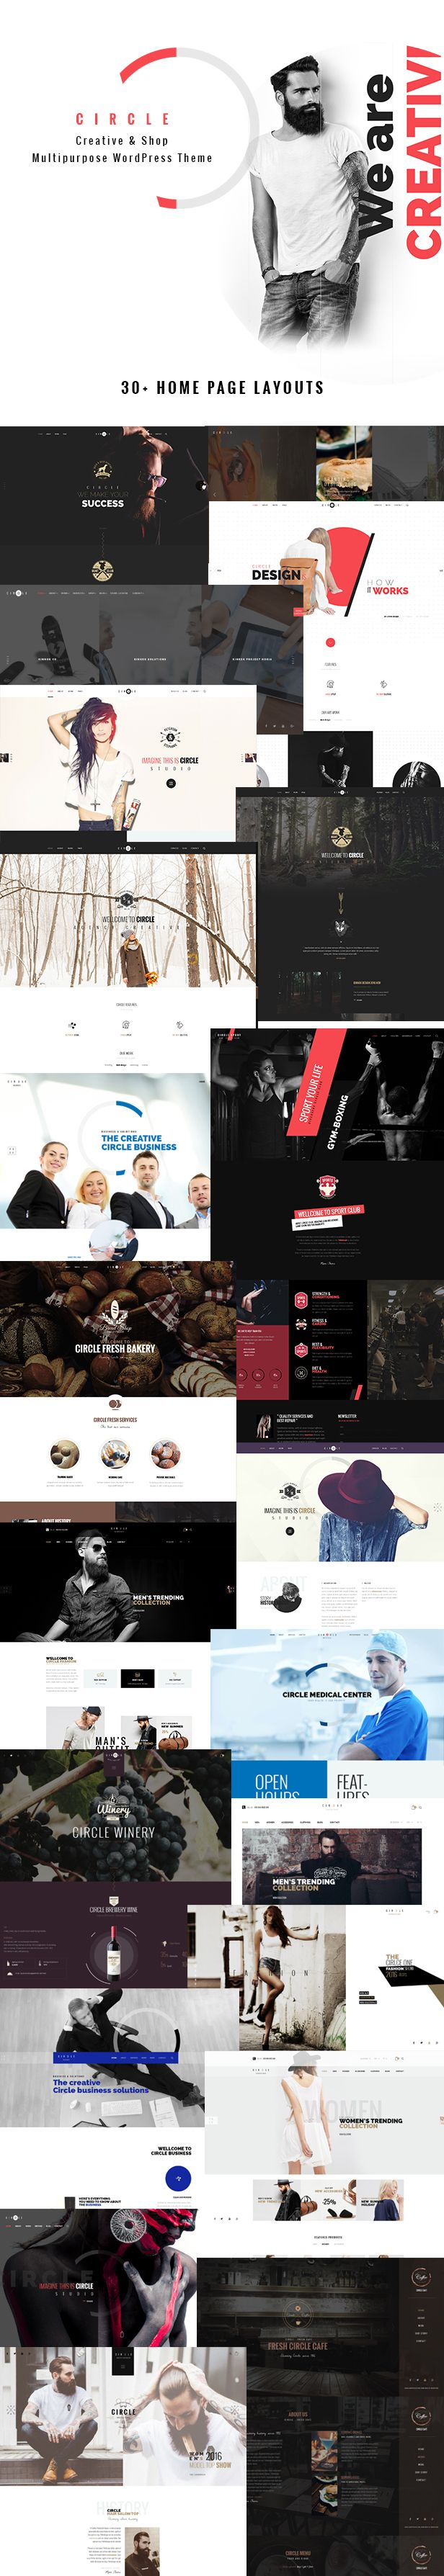 Overview     Circle is an all-purpose, inspiring, exquisite WordPress theme - Circle is a modern design stunning #WordPress theme for creative #studio and multipurpose eCommerce #website with 30+ unique homepage